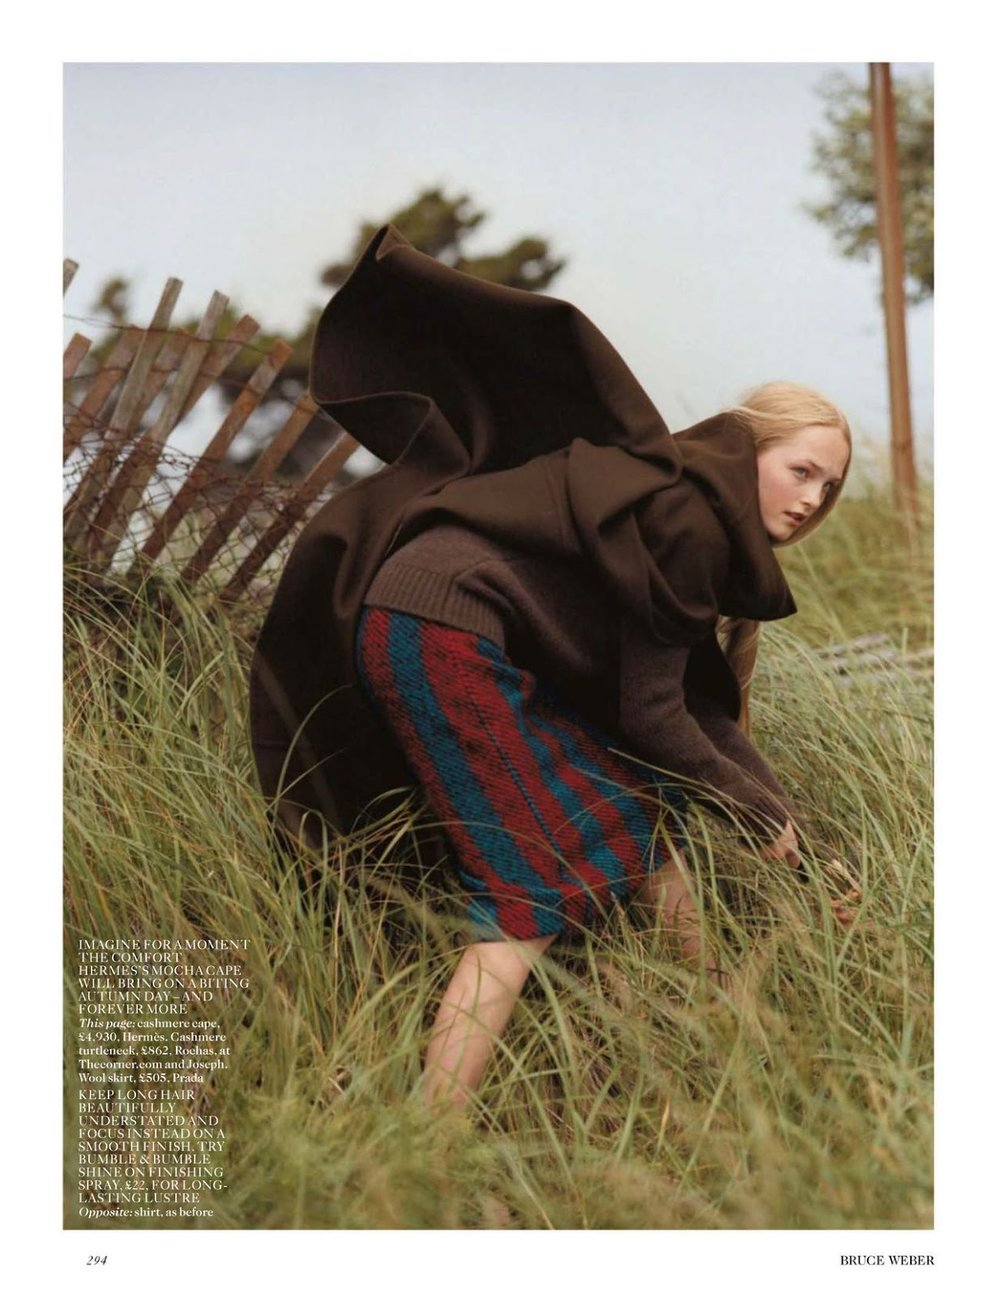 meet me in montauk jean campbell bruce weber joe mckenna vogue uk, october 2013 10.jpg